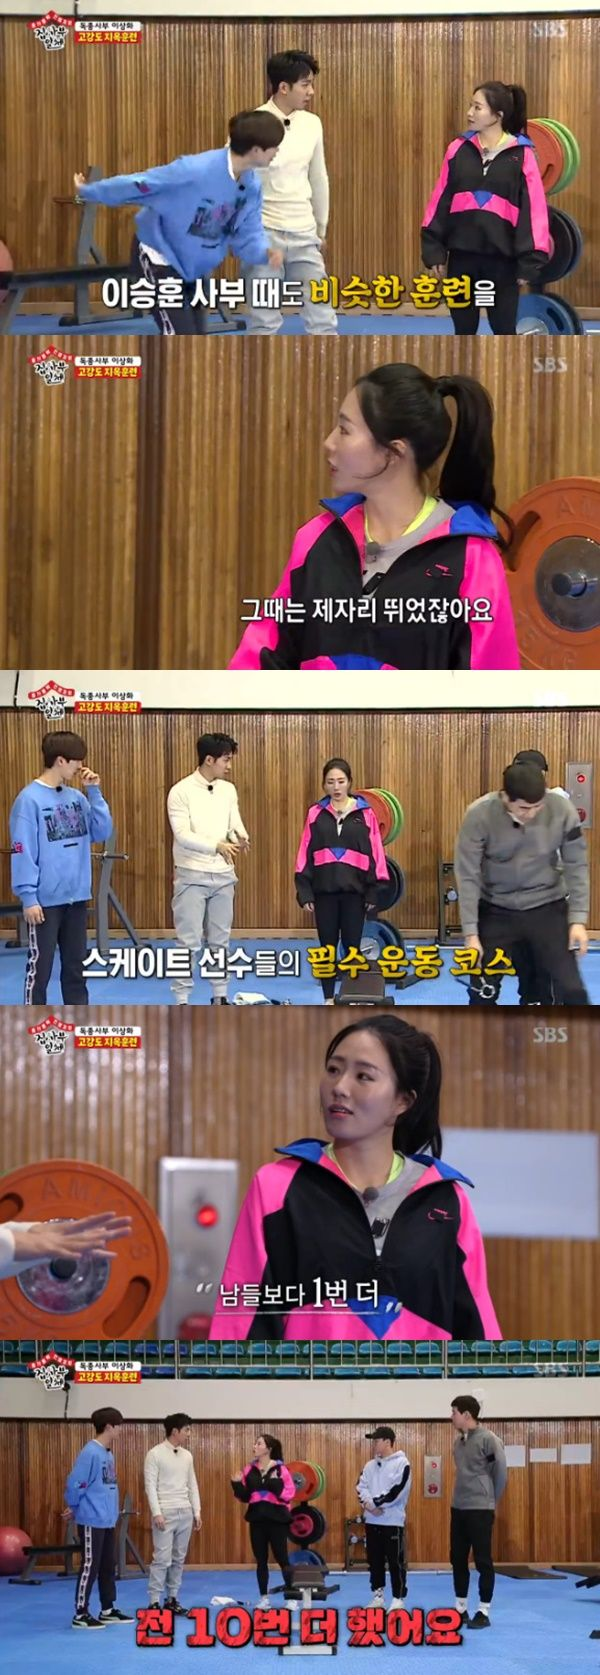 <p> All The Butlers Lee Sang-hwa with Seung Hoon and their differences talked about.</p><p>10 broadcast of SBS TV All The Butlersin Lee Seung-gi Lee Yang Se-hyeong foster the most as a speed skater Lee Sang-hwa met.</p><p>This day members Lee Sang-hwa of the conductor under the high-intensity training began. In training ahead of the warming, Nicholas, Yang Se-hyeong is the behavior and and teacher see me. Who did well?he said. Lee Sang-hwa is Yang Se-hyeong at the end of too scary,said Fox. Lee Seung-gi Thai Hill entering the this have friends?she asked, and Lee Sang-hwa, all these friends. Low interest must receive. (Yang Se-hyeong and) something. Thats the source of confidence. All people should look at,he said to laughter, I found myself.</p><p>This barbell Exercise the body into the pool. Lee Sang-hwa 150kg up to heard. I mens program to fit in Exercise. Warm-up 60kg on one,and revealed that the members took me by surprise. He than usual 20kg by adding 80kg on a barbell Exercise.</p><p>Or Lee Sang-hwa is a bench point, but suggested. Lee Seung-gi this is skating the players do a lot of Exercise this? Lee Seung-Hoon from when similar training was,said speed skating athlete Lee Seung-Hoon buy featured as part of what was recalled. Lee Sang-hwa however, the wins and a reminder that the run did not because. I pass. Seunghoon love me is different.</p><p>This Lee Seung-gi Lee Seung-Hoon from South than 1 once more was it,he said. Lee Sang-hwa is 10 times more. So this up to beand victory reminder that I respect the players. However, the species is different, then dont. Wins distinguished long-distance and short-distance. I instantaneous force to write,he explained to the members to admire.</p>